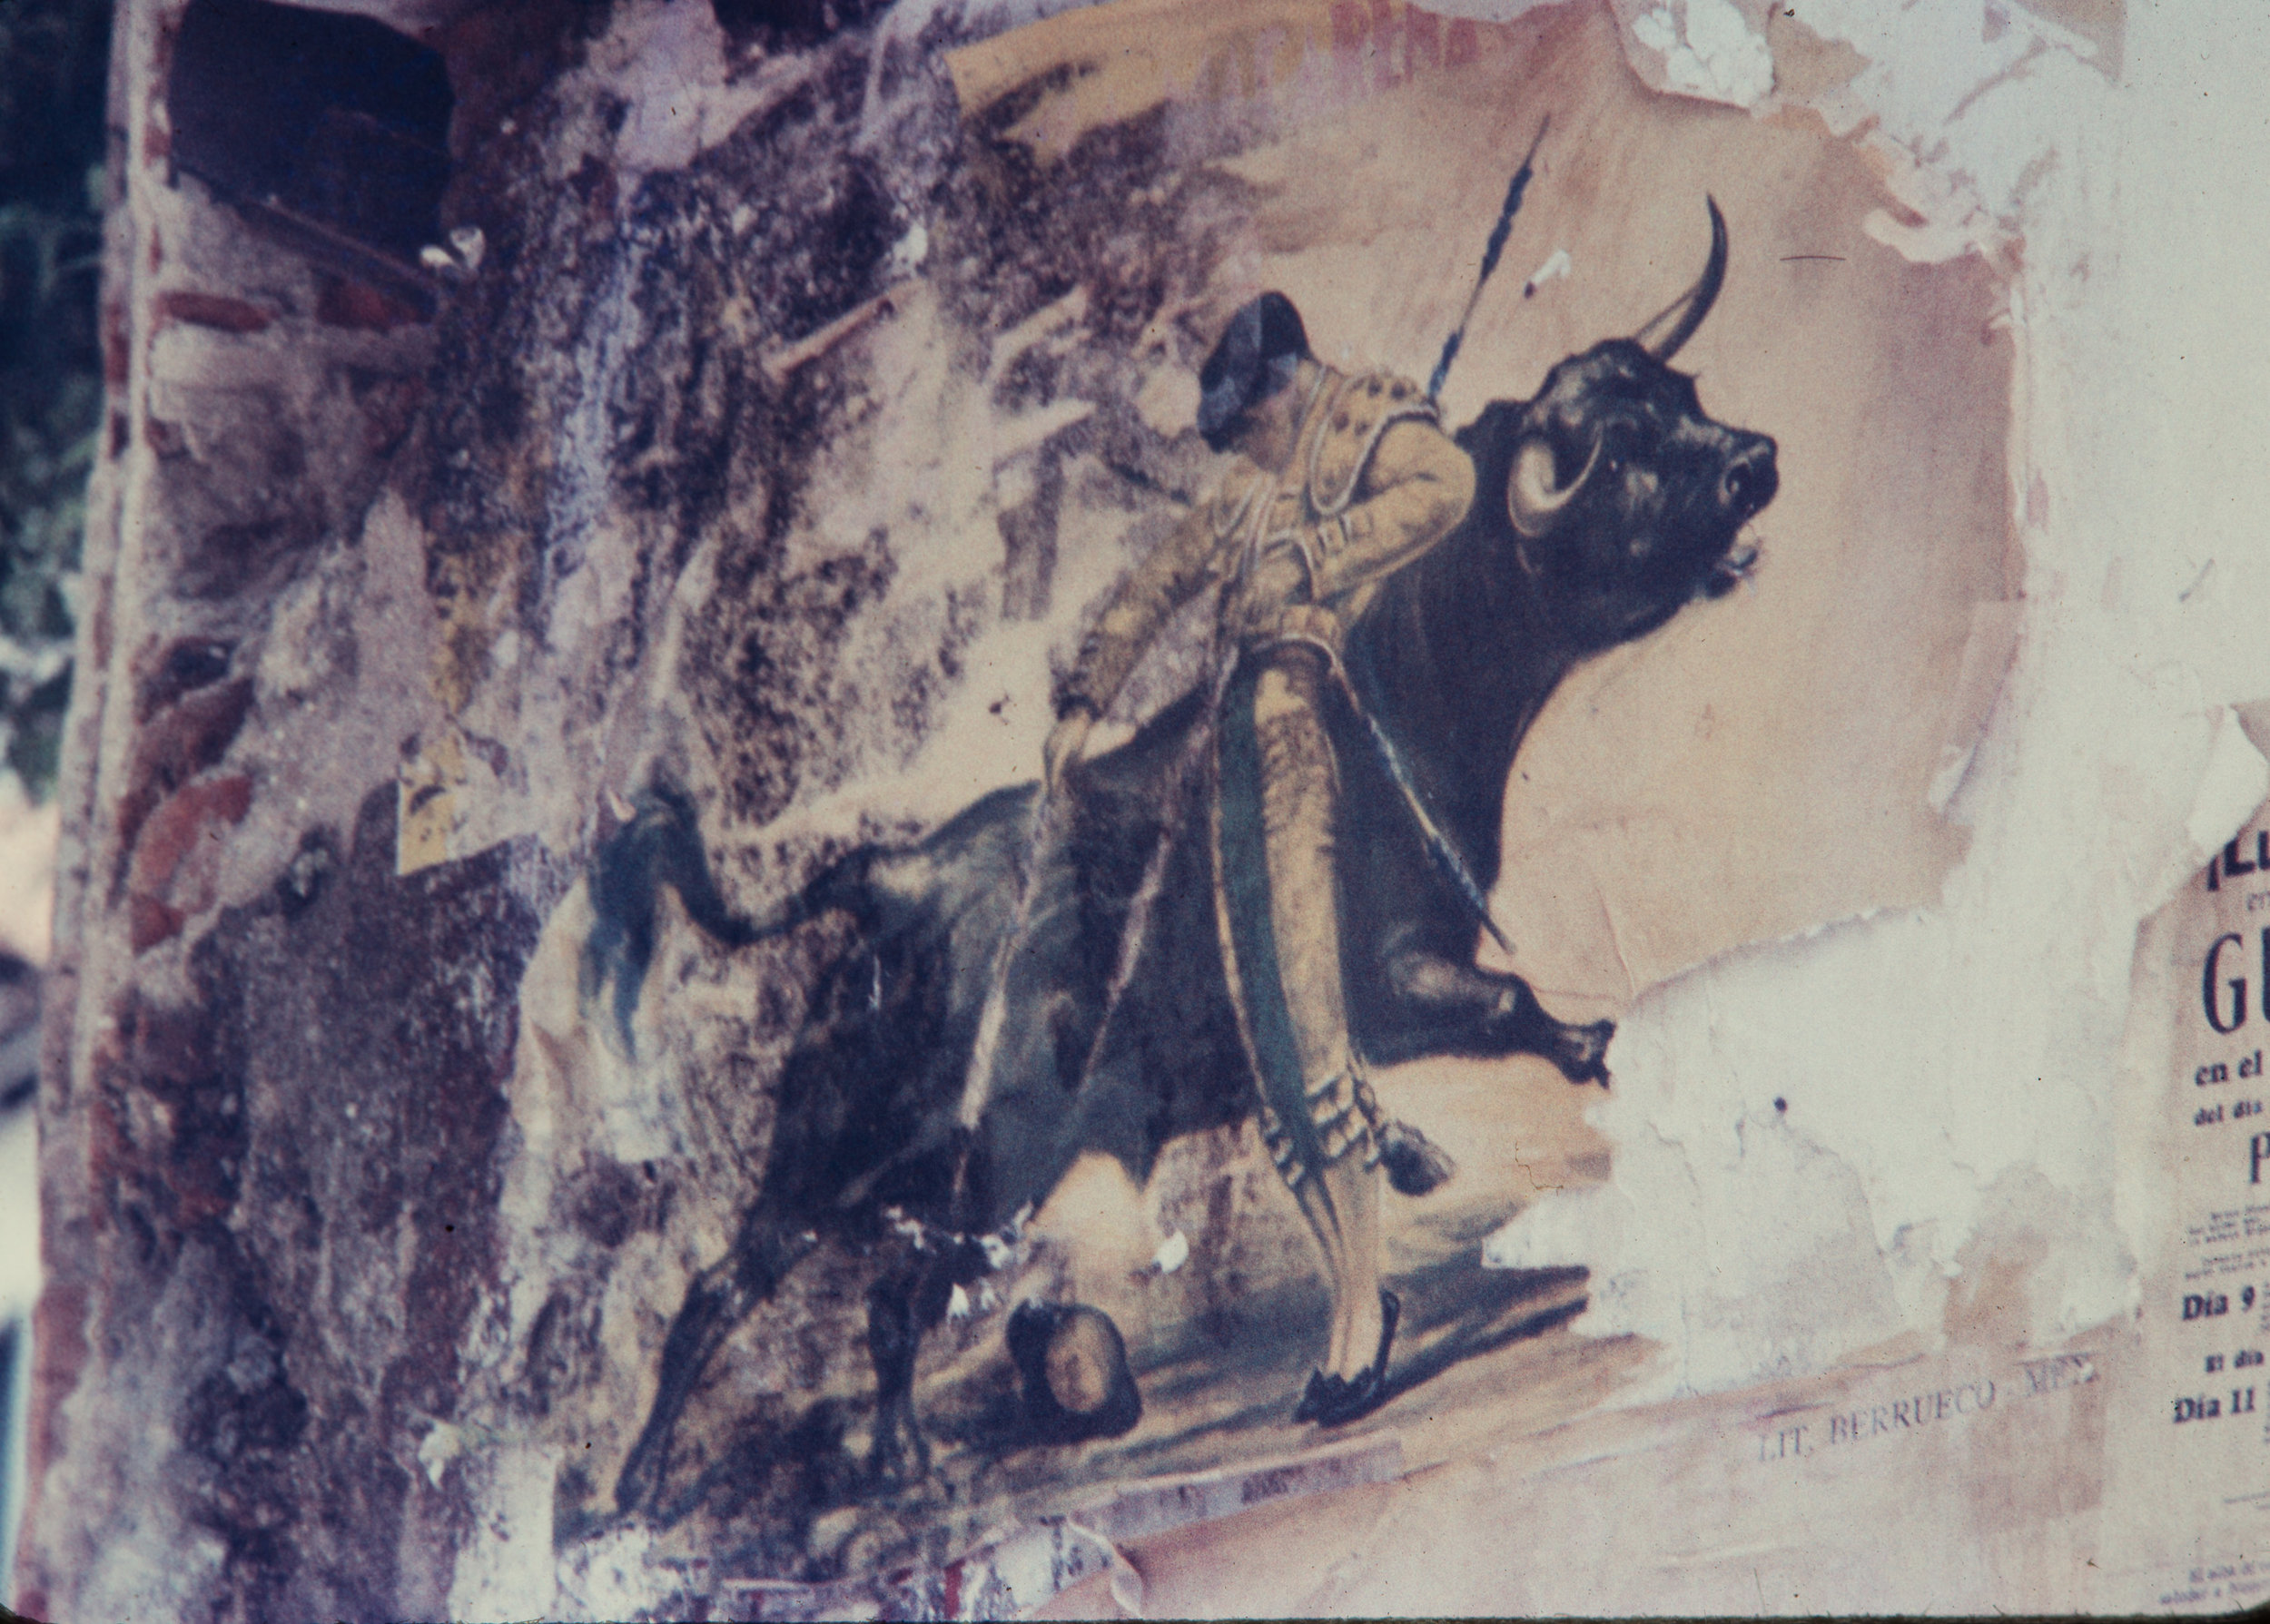 Bullfight mural, Mexico, 1957